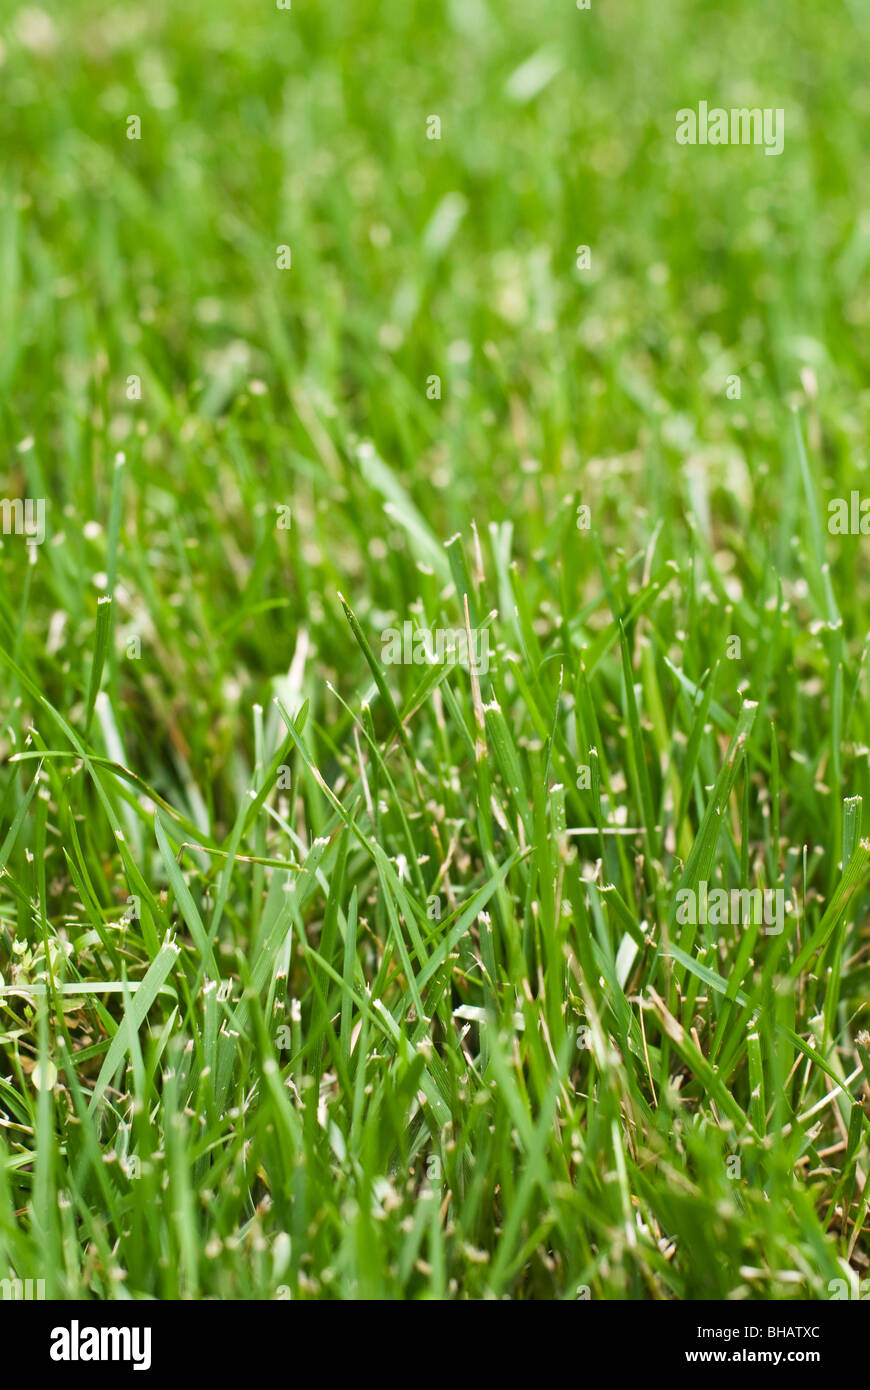 Close-up of Grass Photo Stock